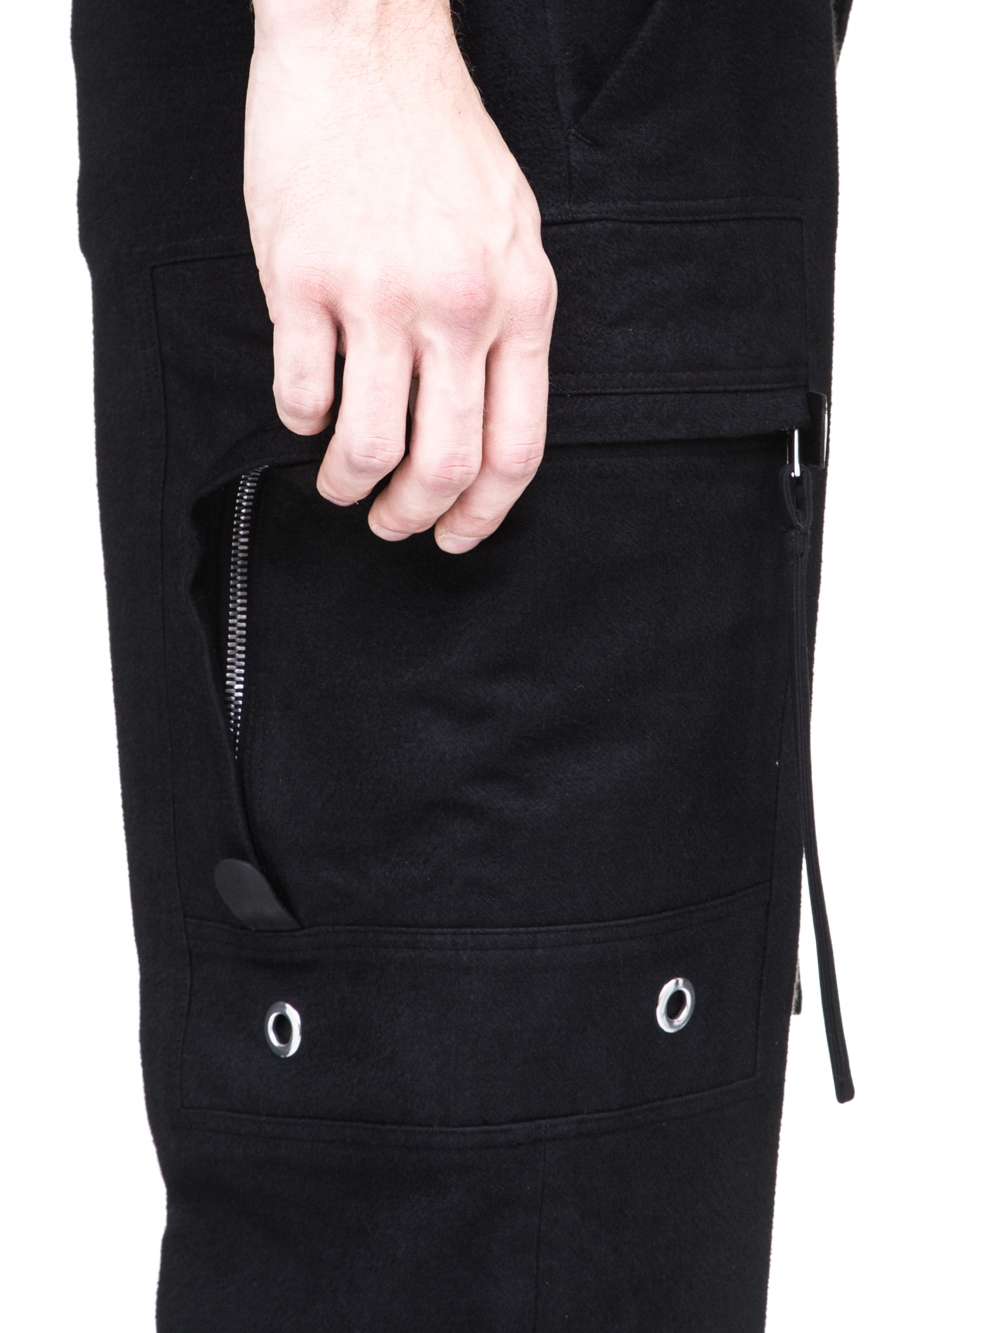 RICK OWENS OFF-THE-RUNWAY CARGO DIRT PANTS IN BLACK SILK BLEND MOLESKIN ARE EXTREMELY HIGH-WAISTED